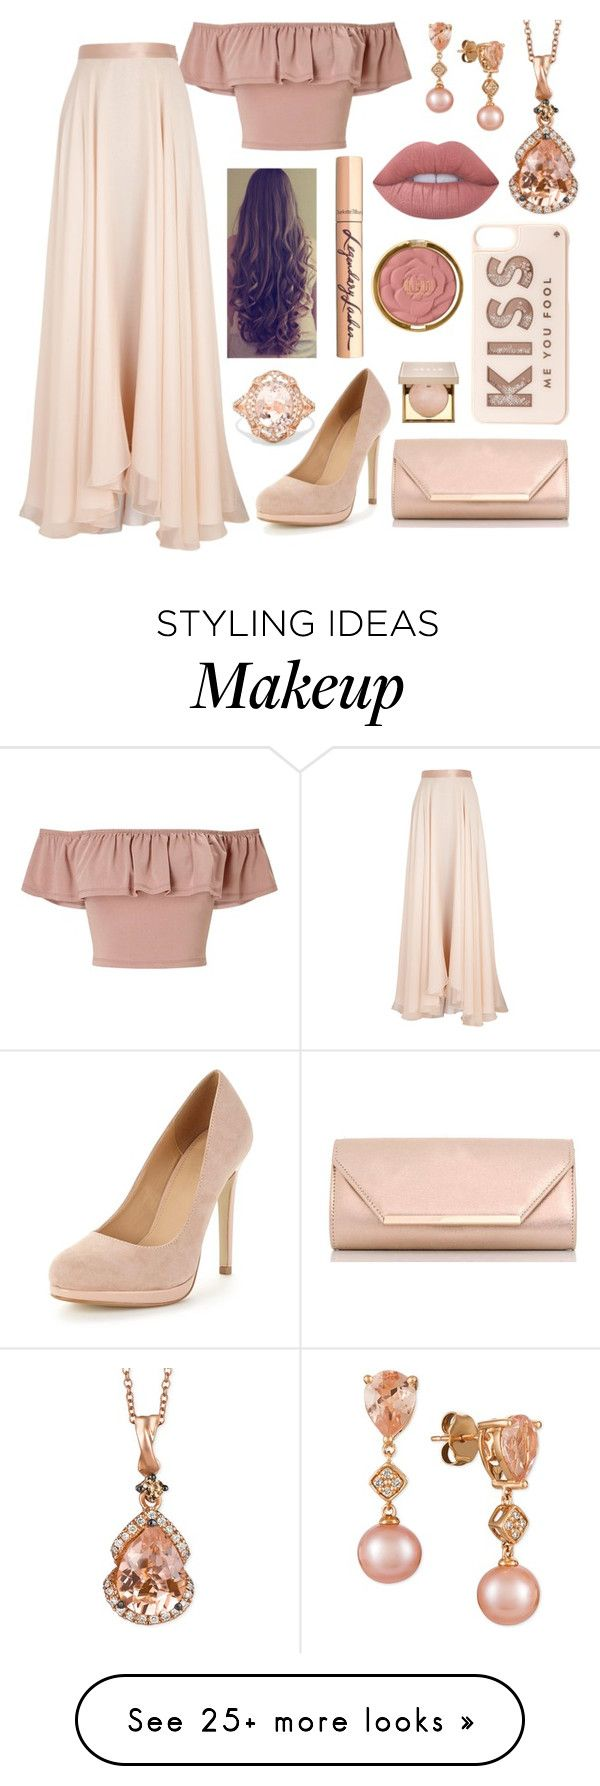 """""""Untitled #993"""" by aralynwinchester on Polyvore featuring Miss Selfridge, Lanvin, Dorothy Perkins, LE VIAN, Kate Spade, Effy Jewelry, Stila, Charlotte Tilbury, Lime Crime and Milani"""